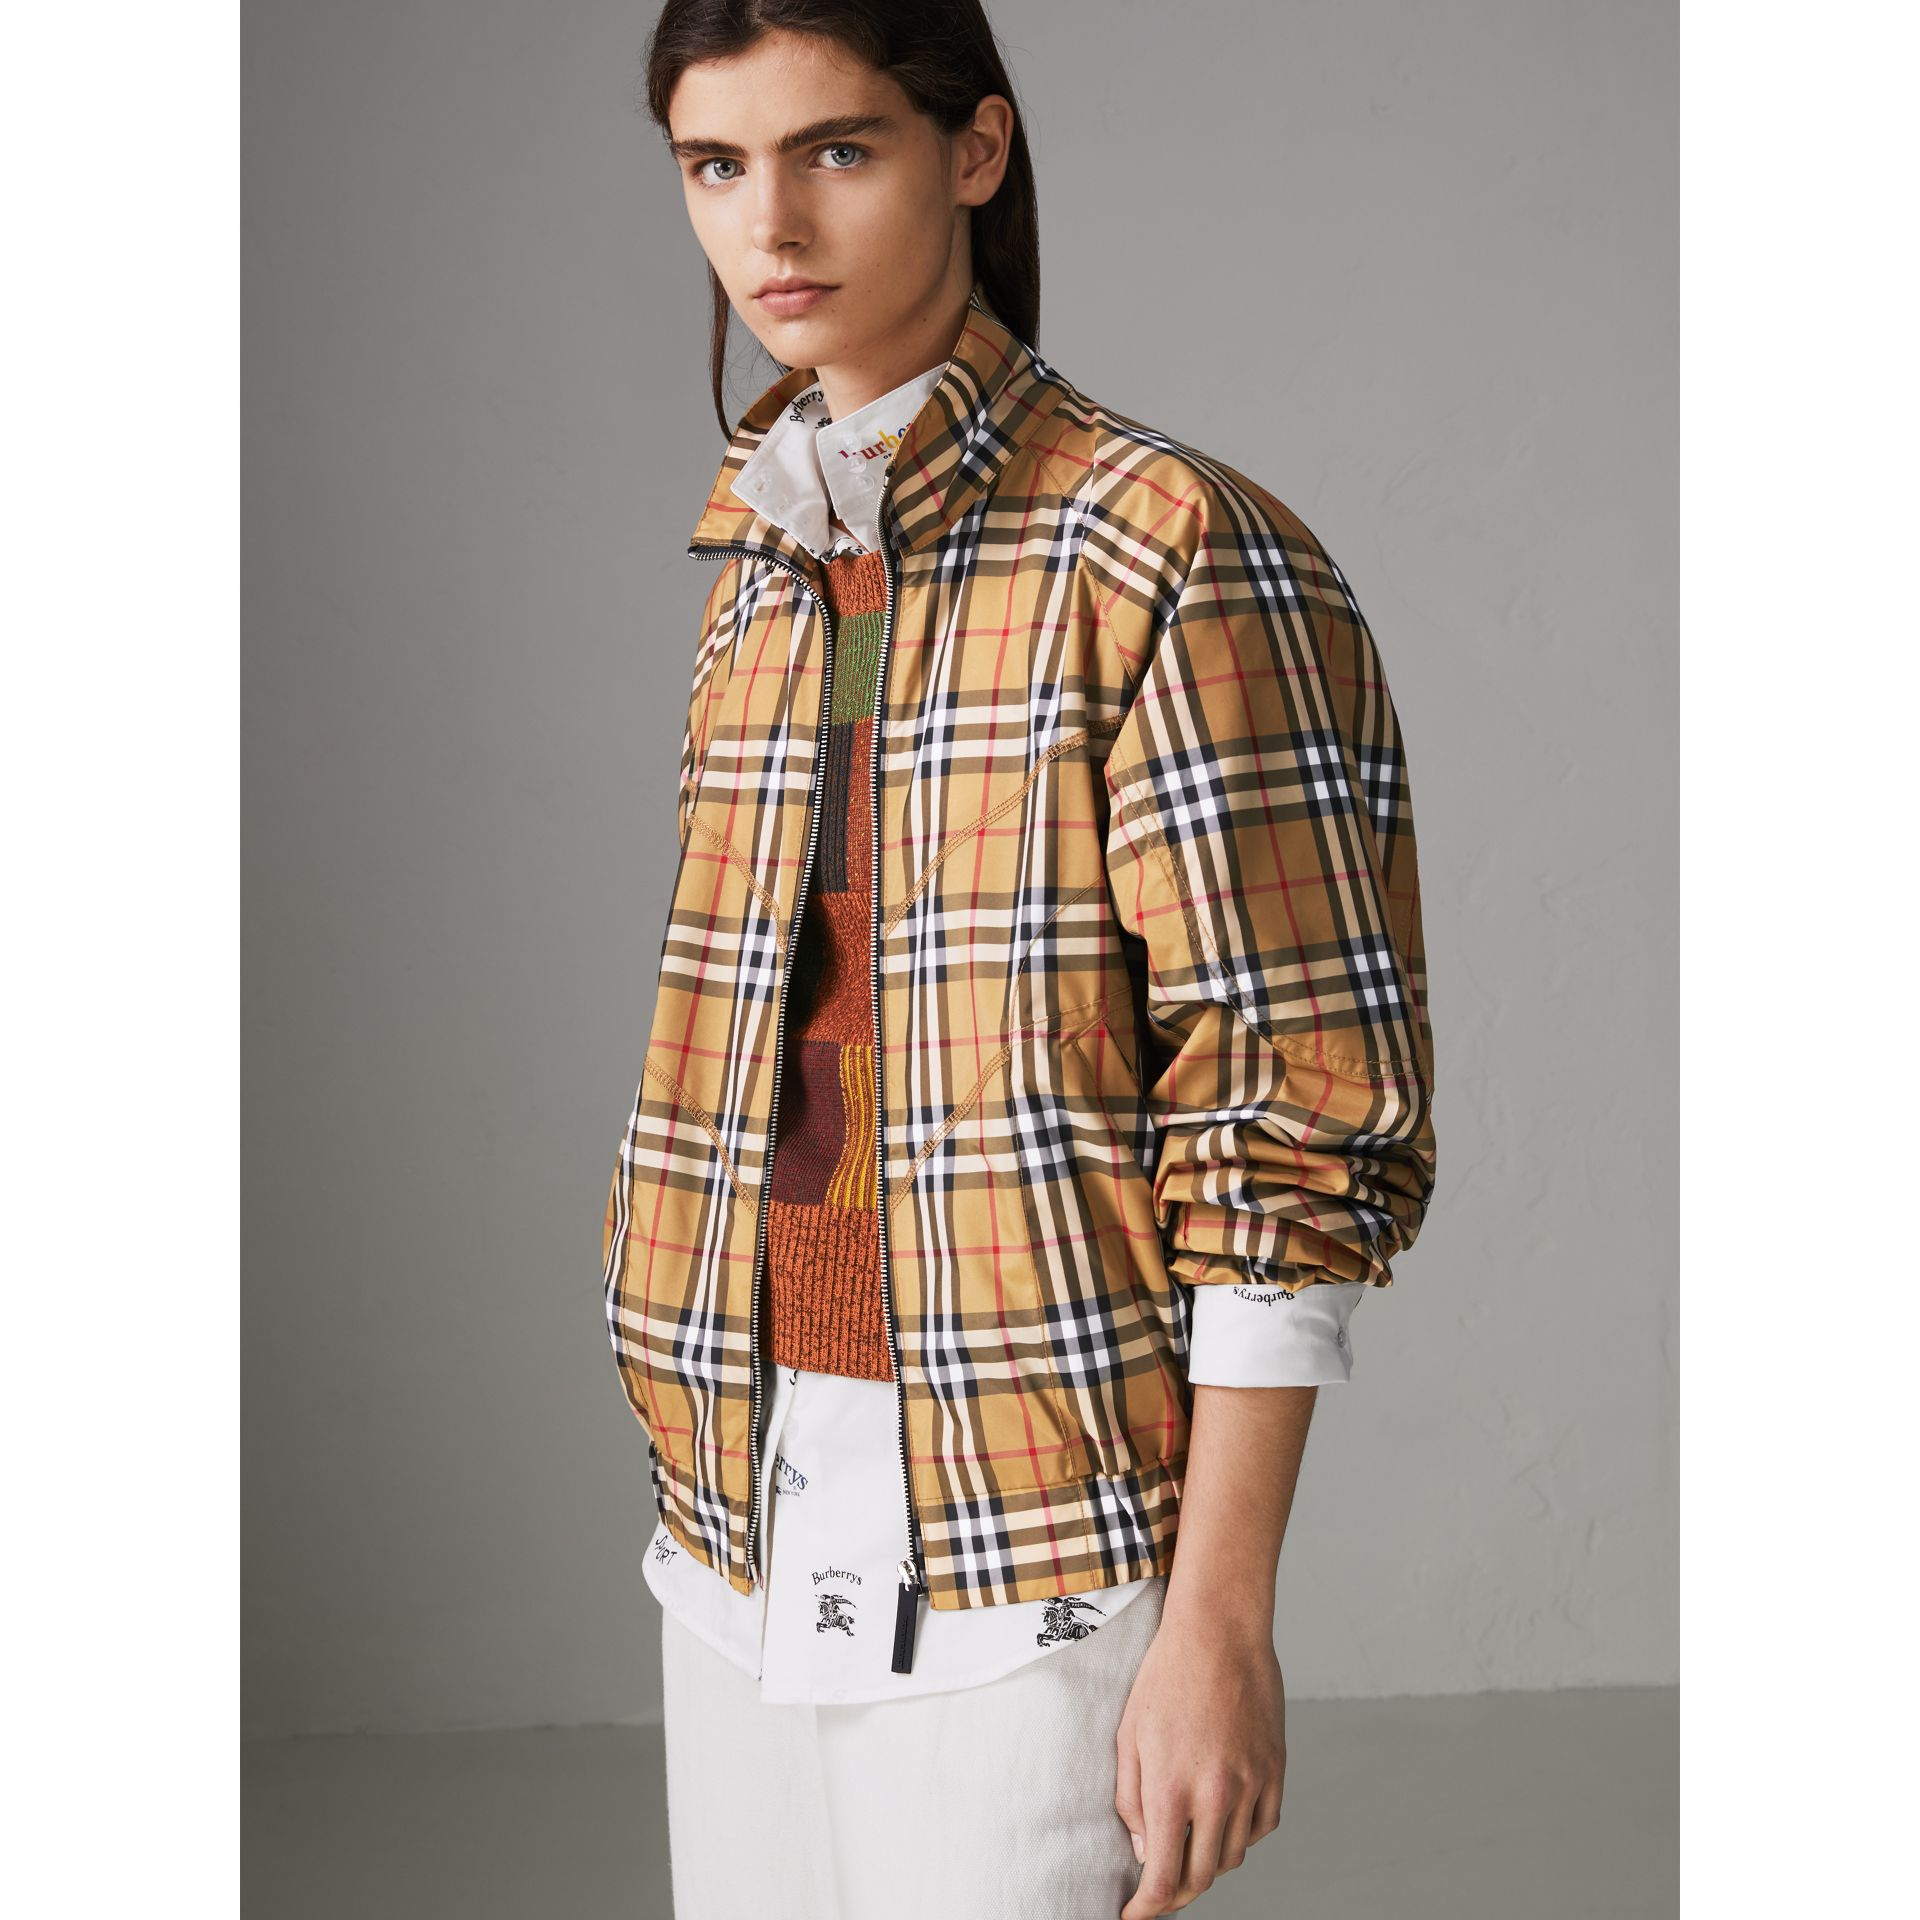 Veste Harrington à motif Vintage check et surpiqûres (Jaune Antique) - Femme | Burberry Canada - photo de la galerie 5